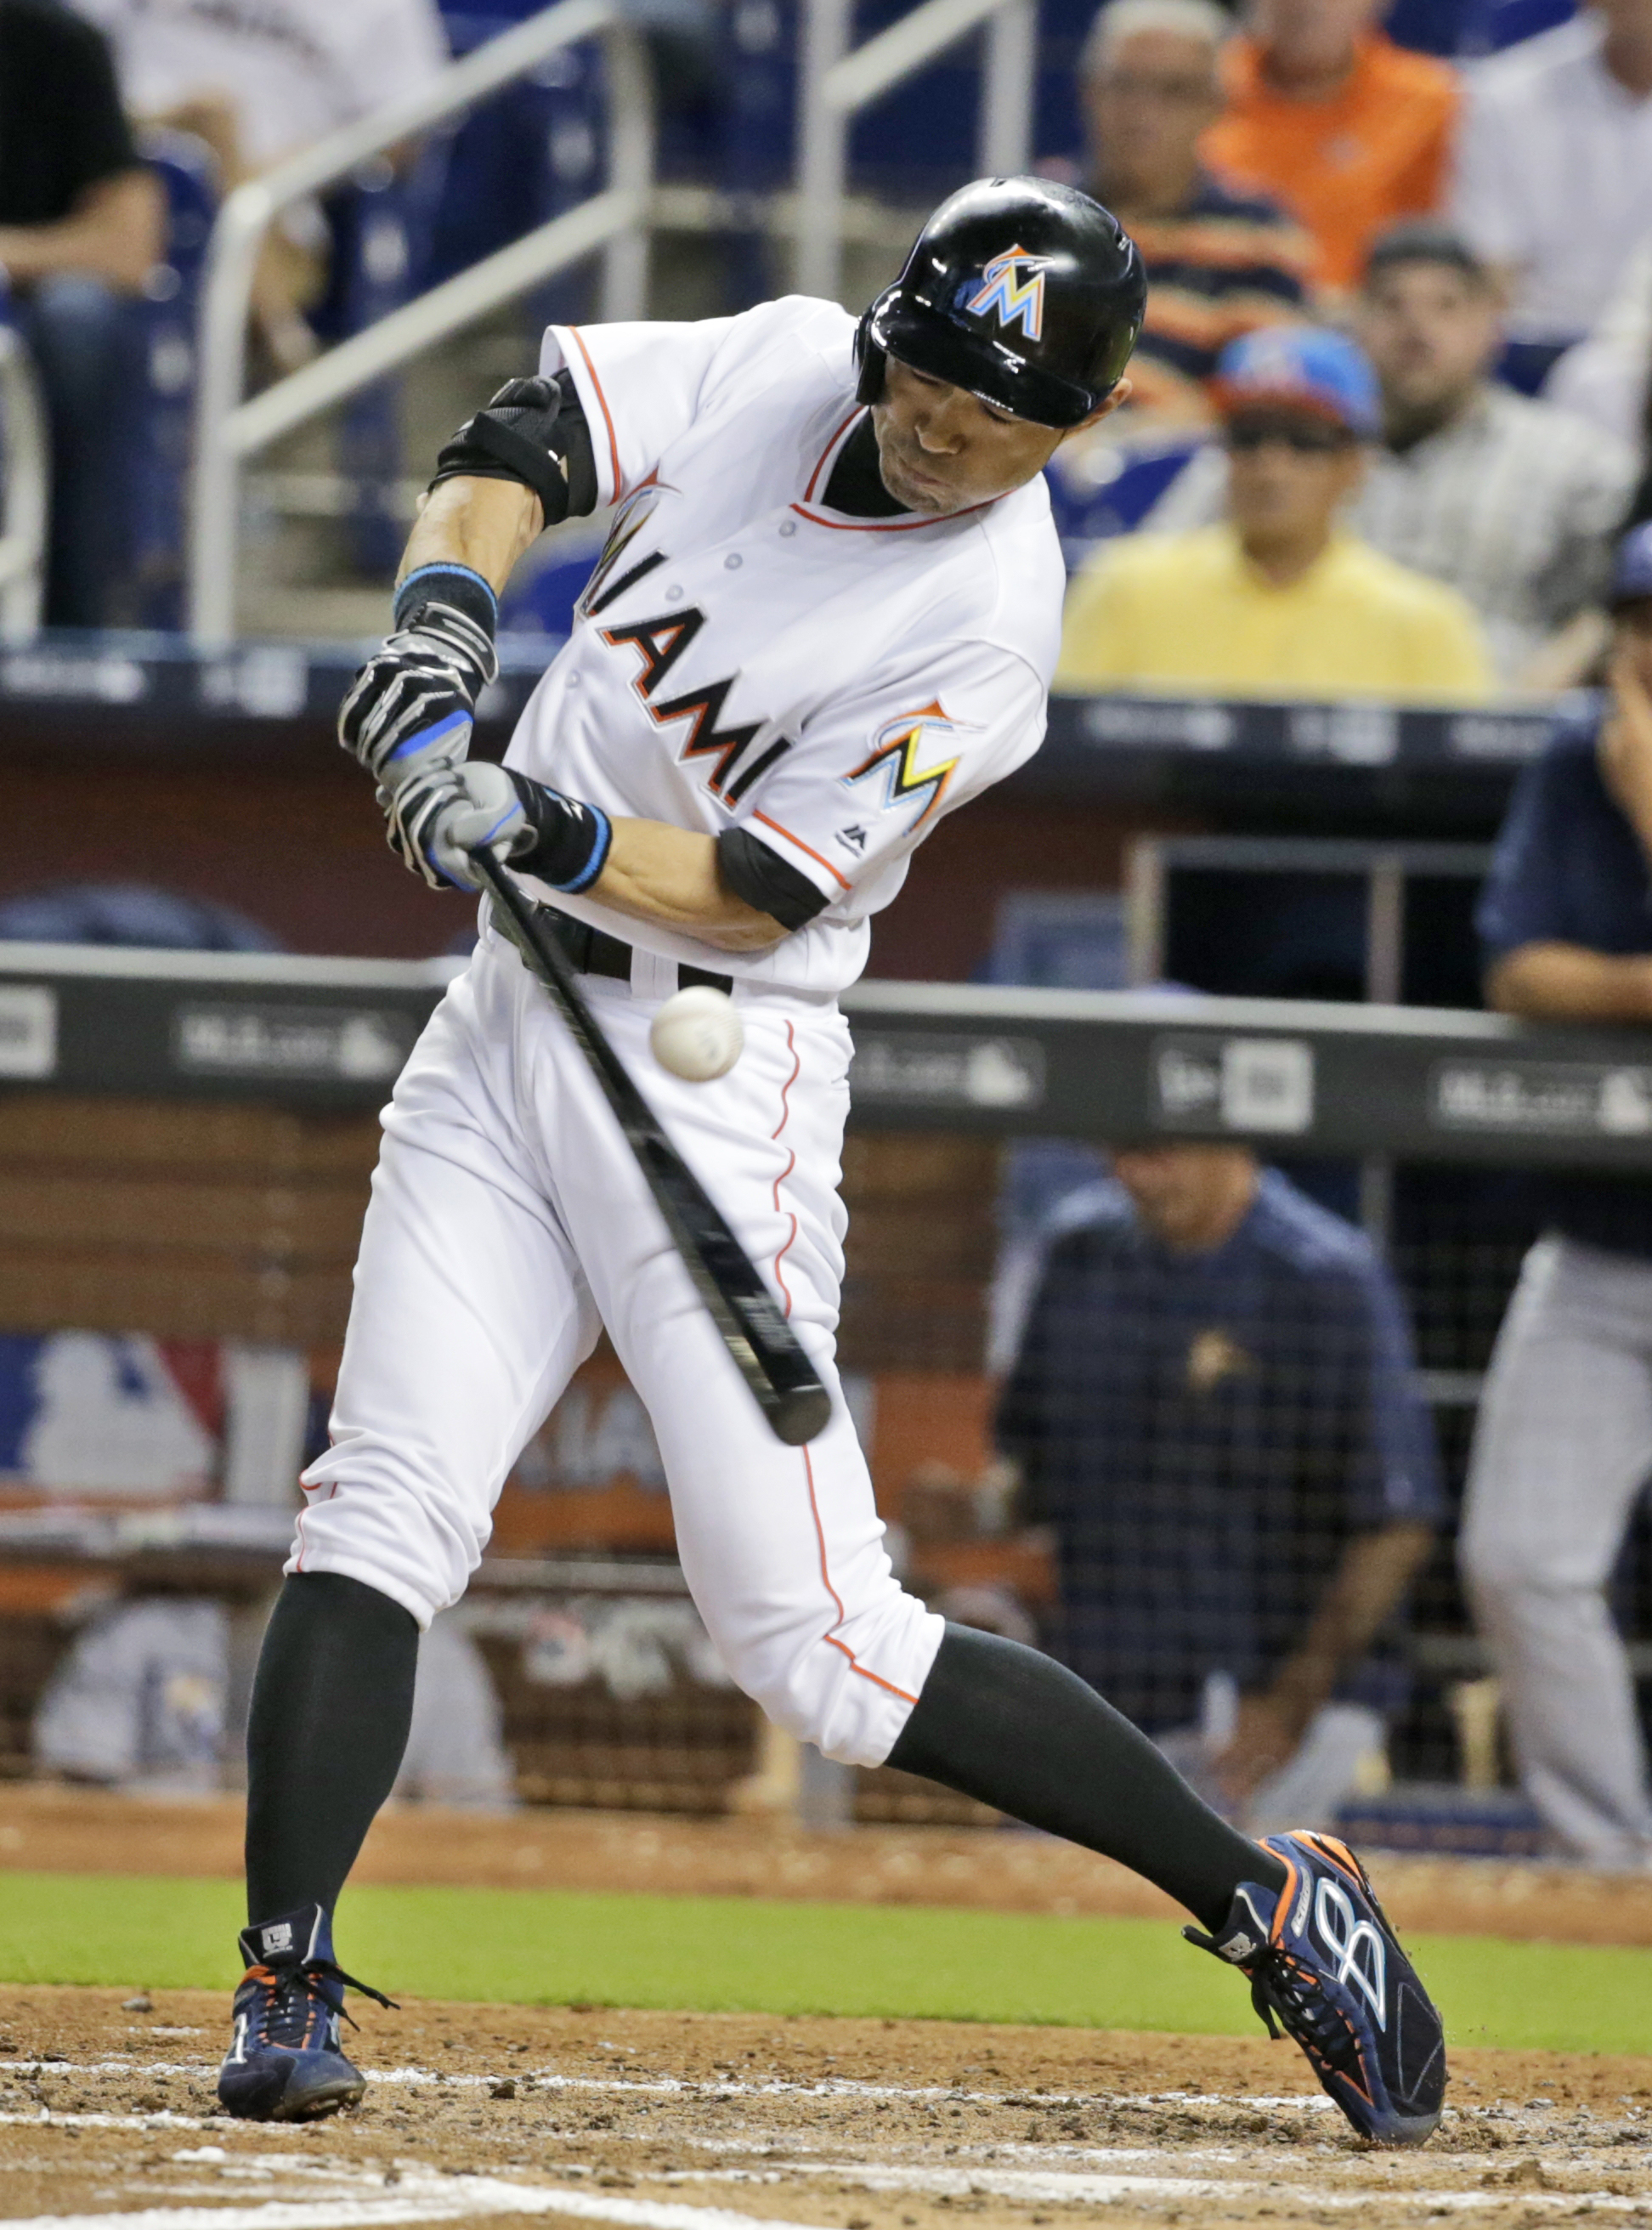 Miami Marlins' Ichiro Suzuki, of Japan, bats during the third inning of a baseball game against the Tampa Bay Rays, Tuesday, May 24, 2016, in Miami. (AP Photo/Wilfredo Lee)